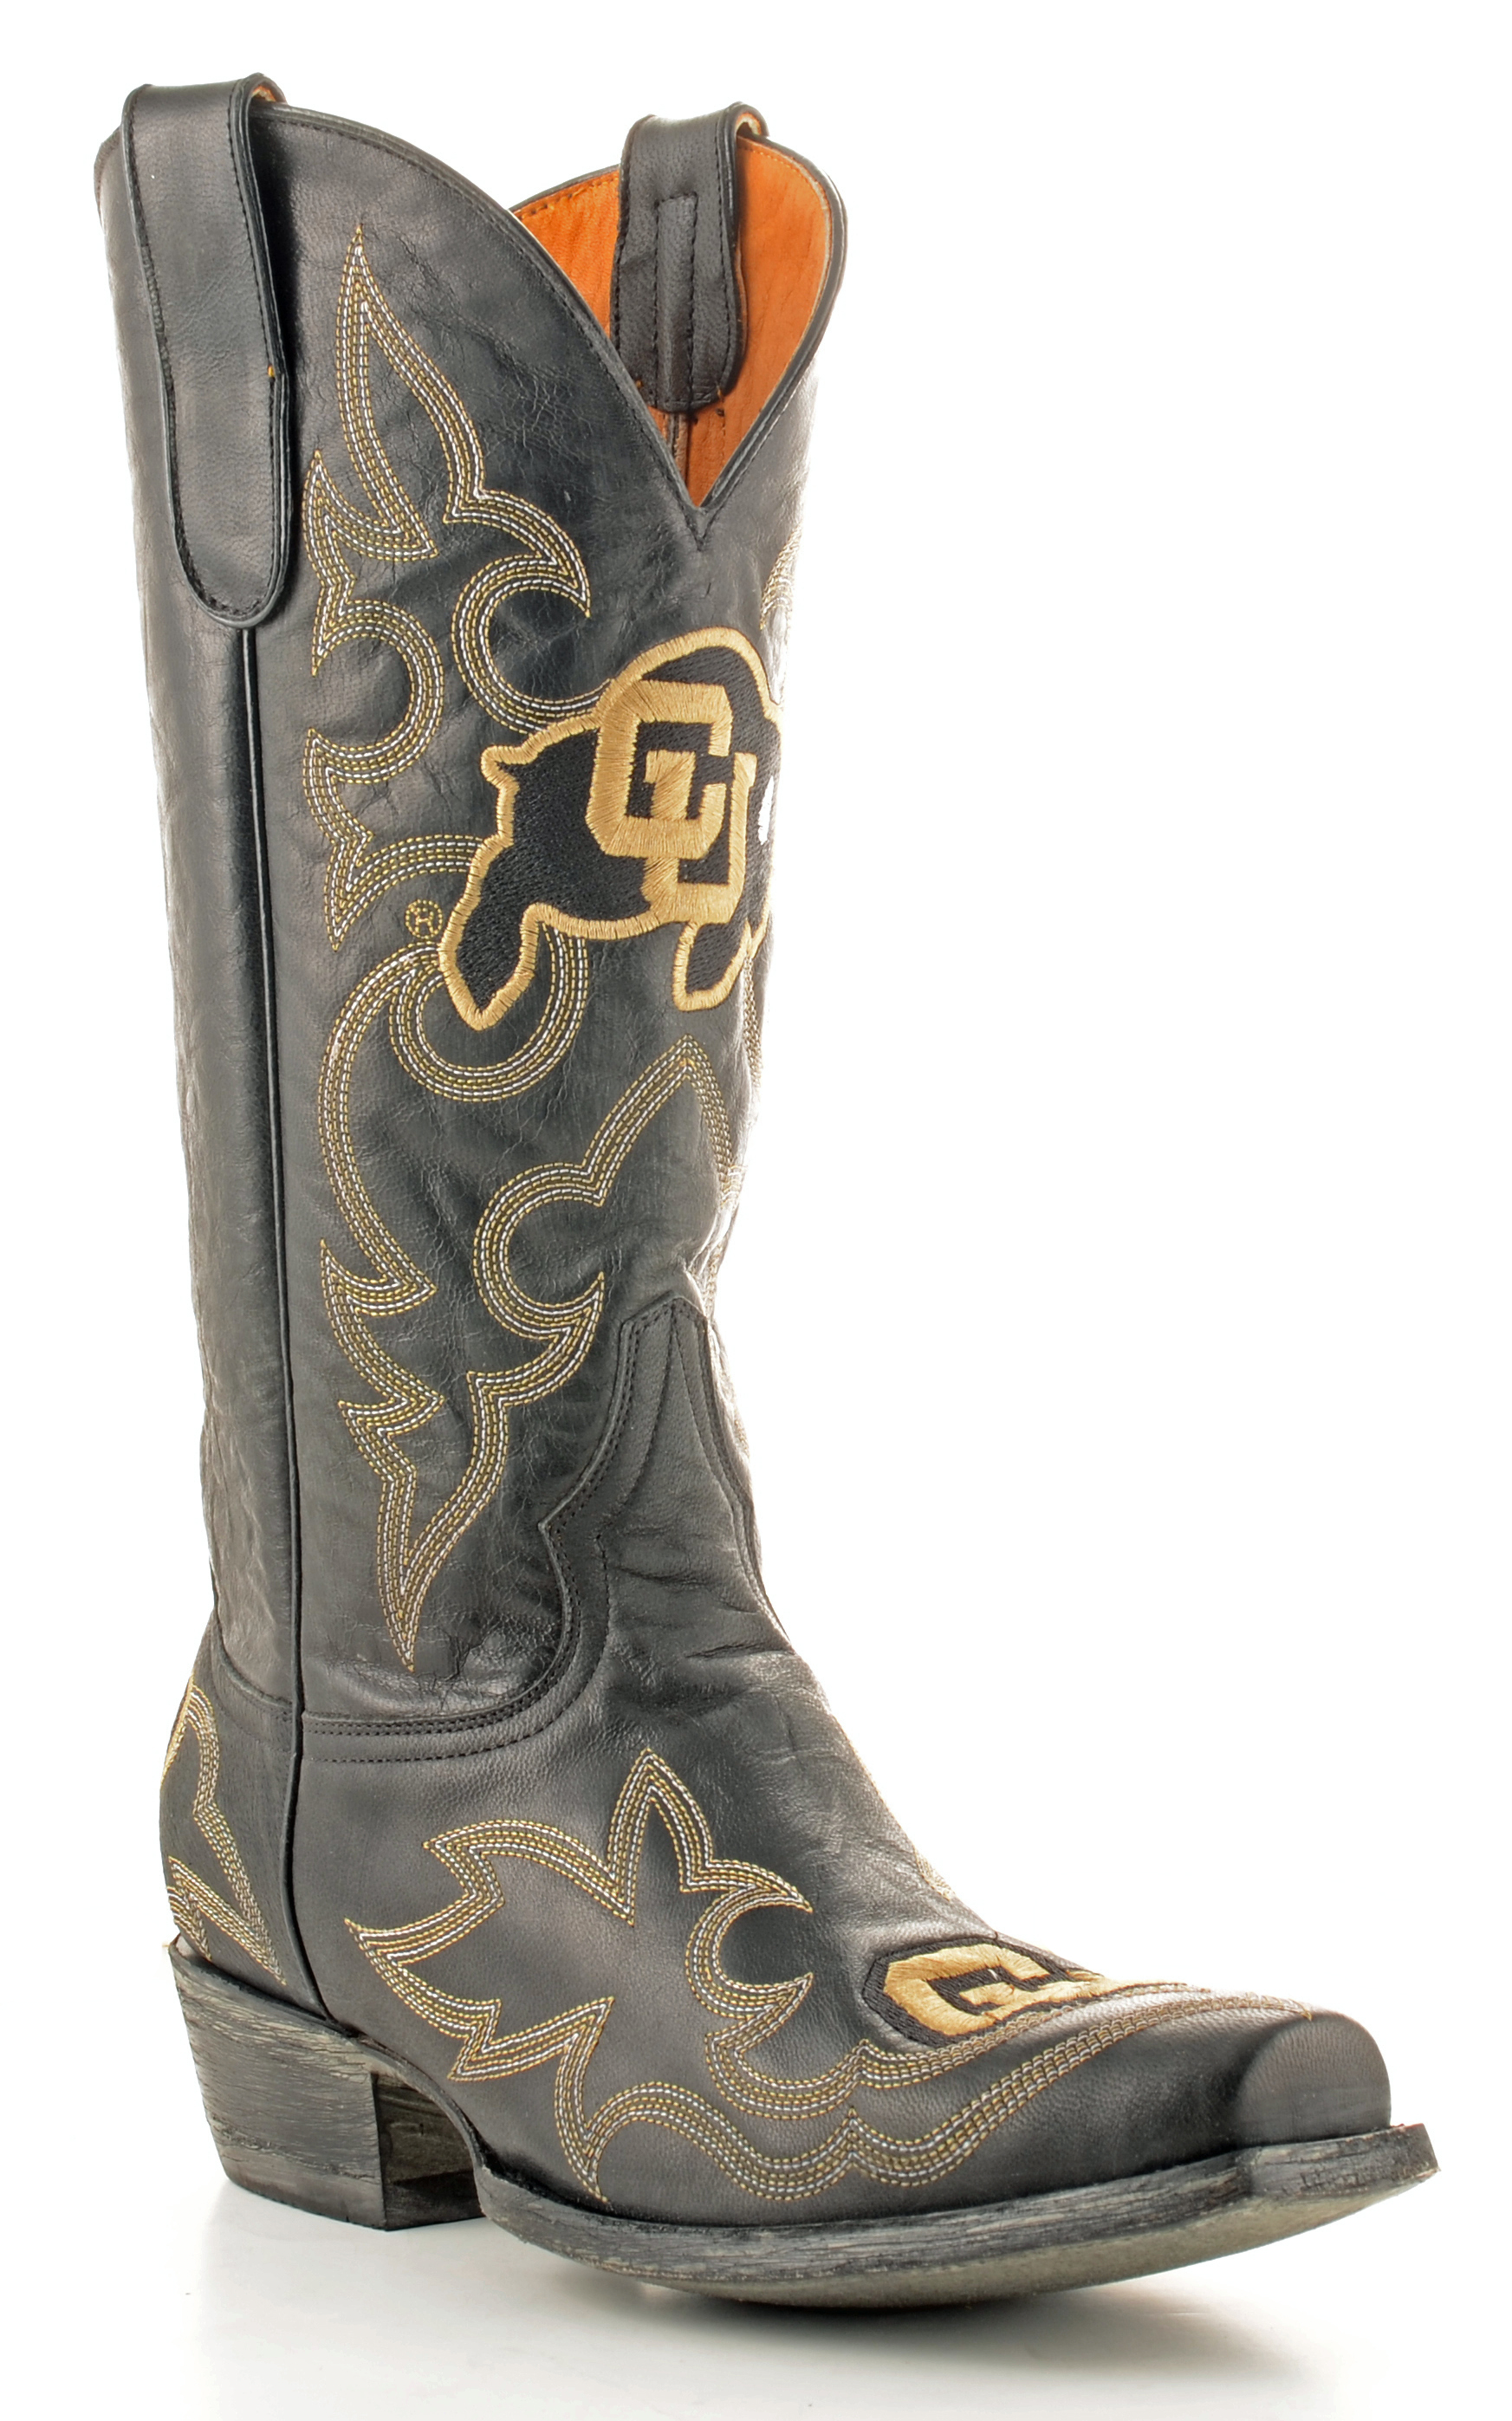 Gameday Boots Mens Leather University Of Colorado Cowboy Boots by GameDay Boots